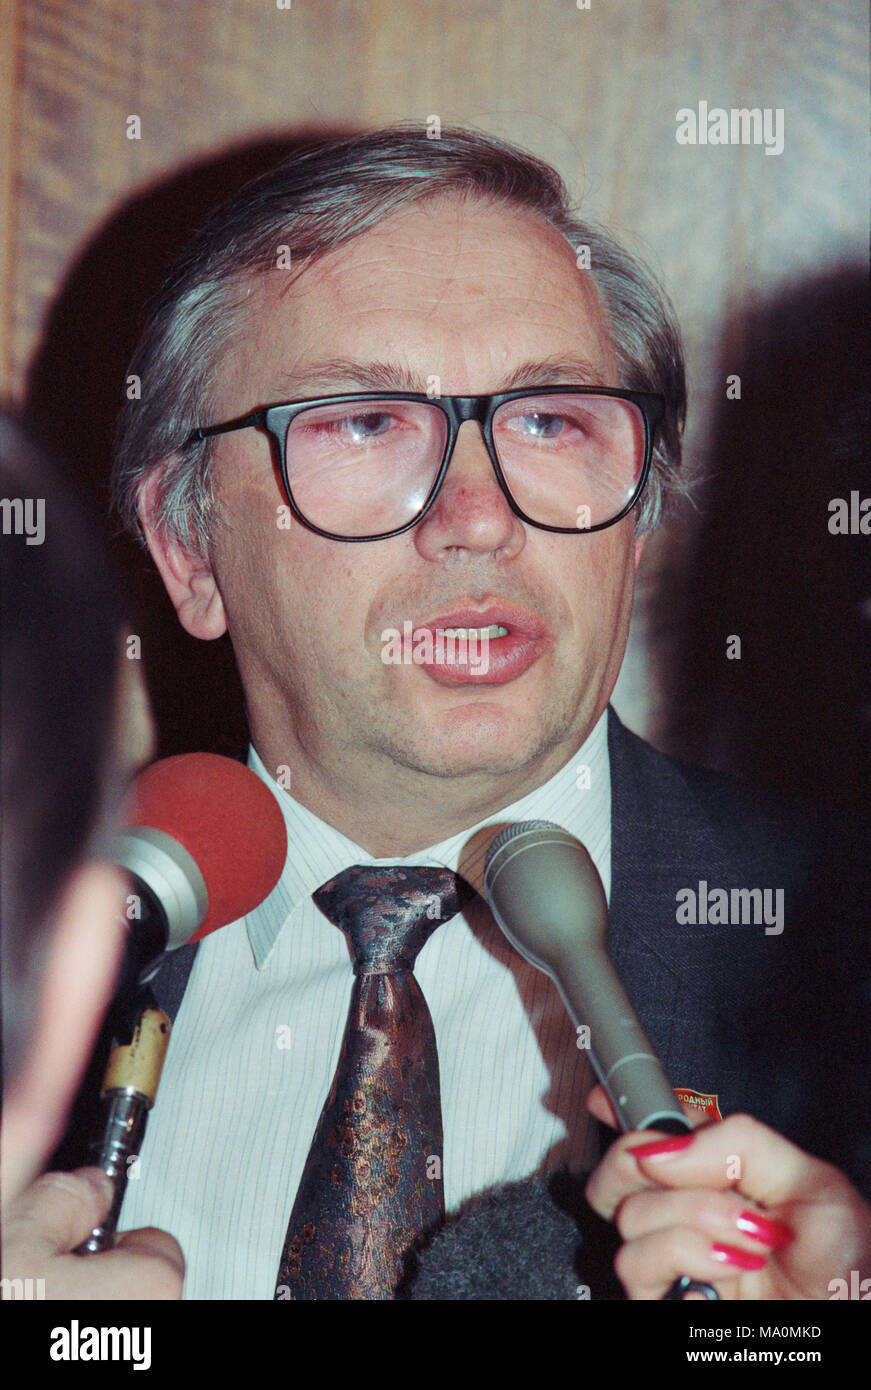 Moscow, Russia - February 07, 1992: Newly appointed ambassador of Russia to the USA Vladimir Petrovich Lukin at his press-conference - Stock Image